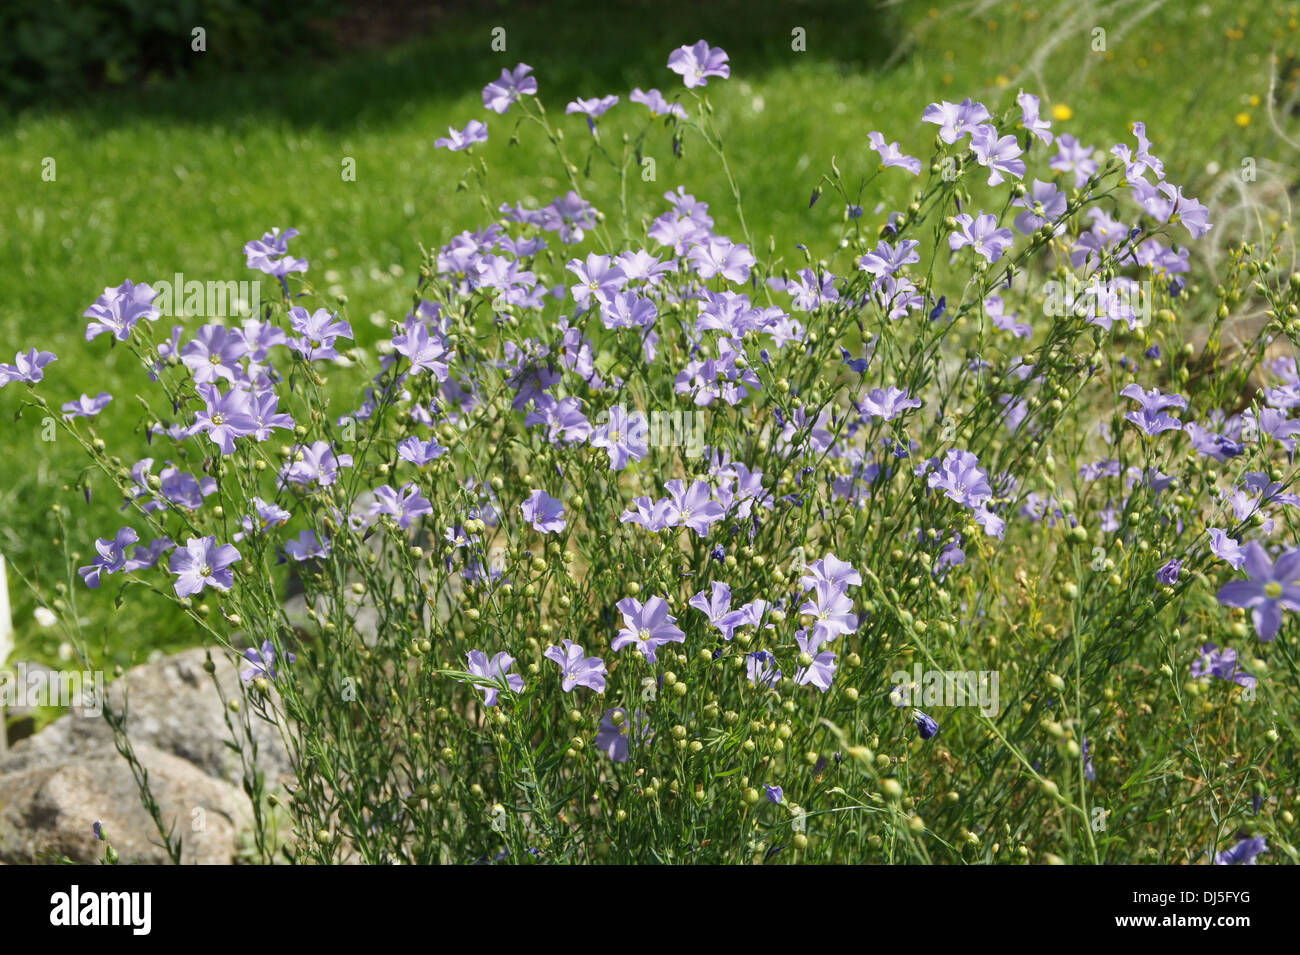 Blue Flax - Stock Image